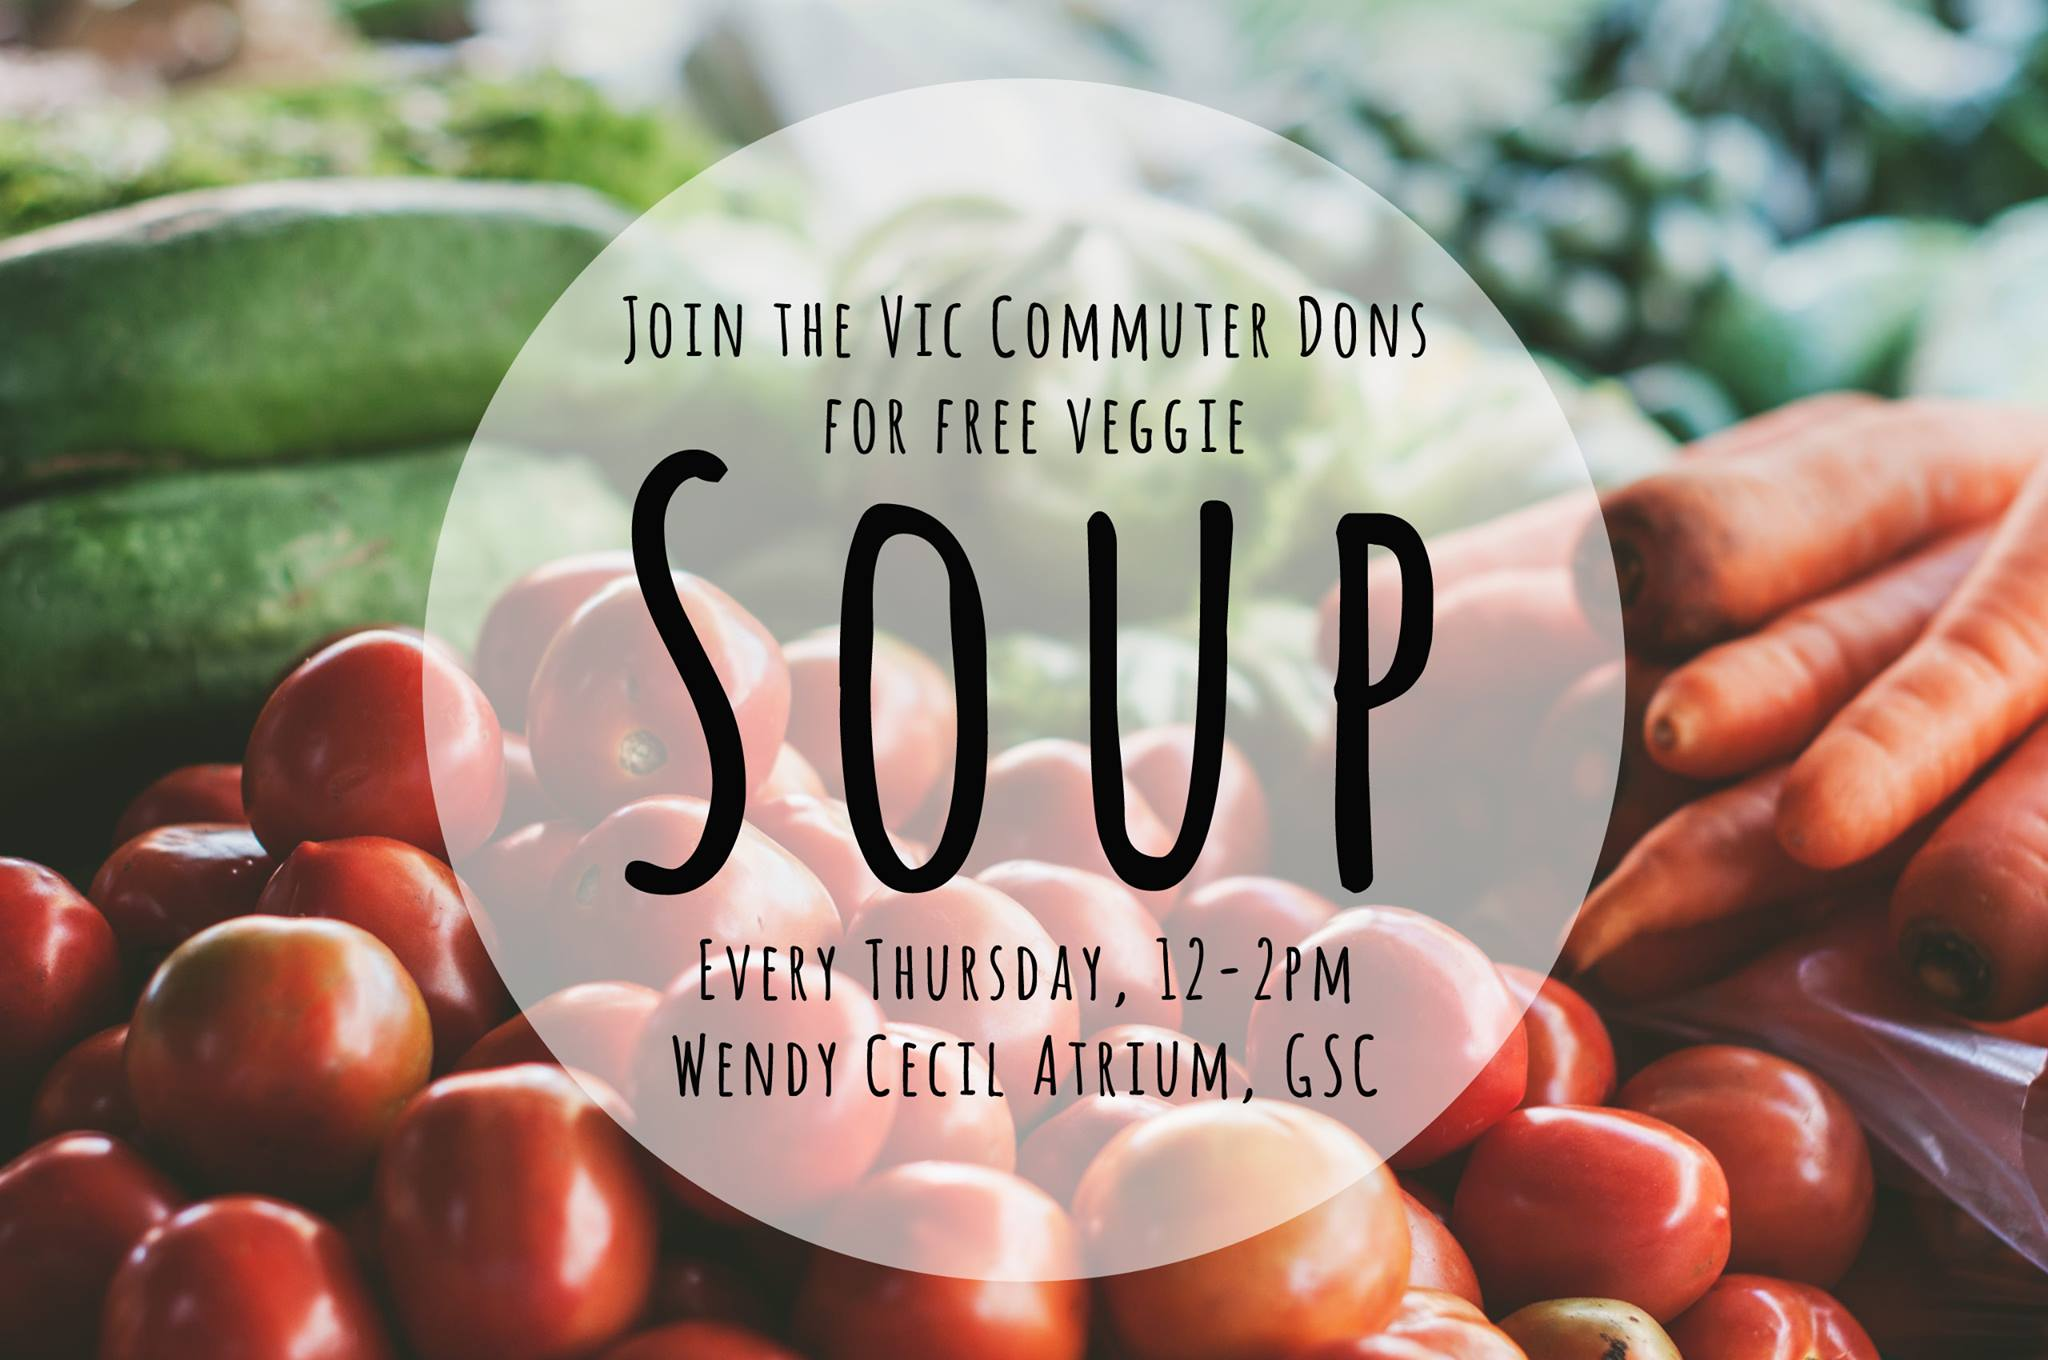 Poster for free veggie soup with the Commuter Dons